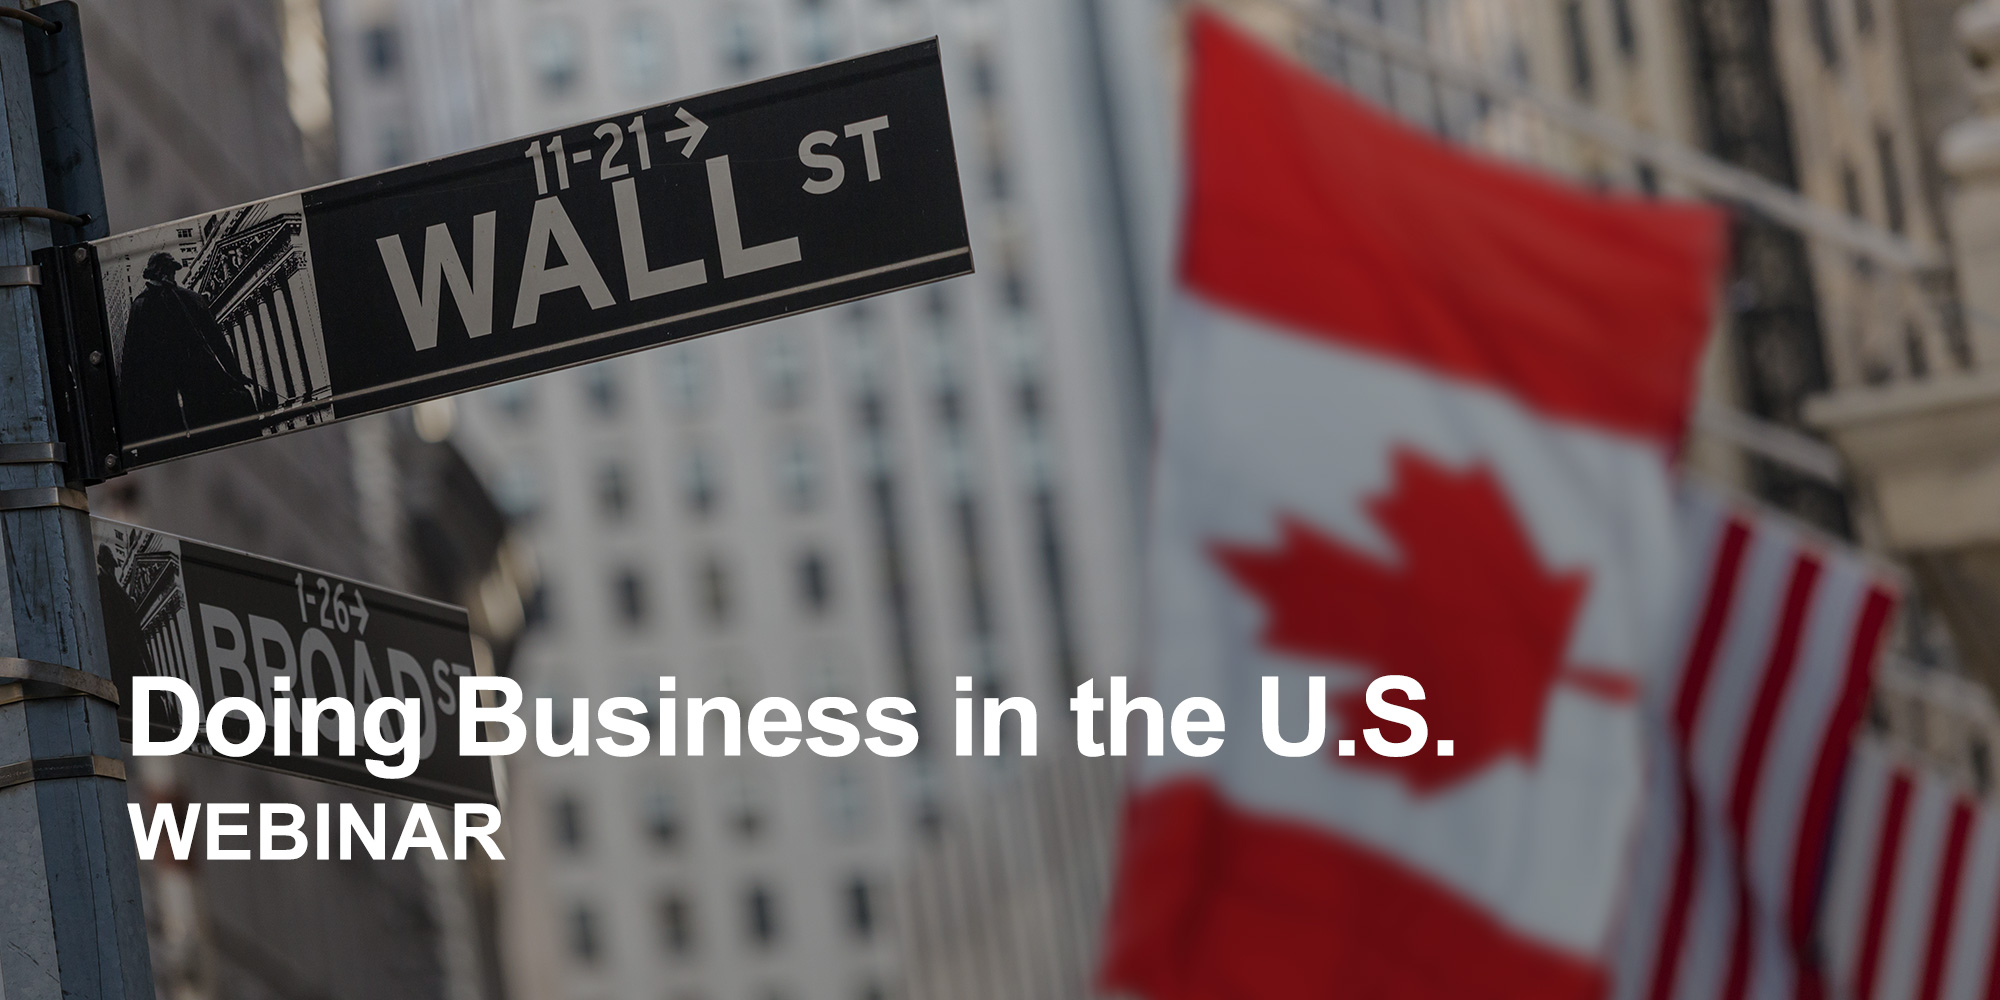 Canadians Doing Business in the U.S.